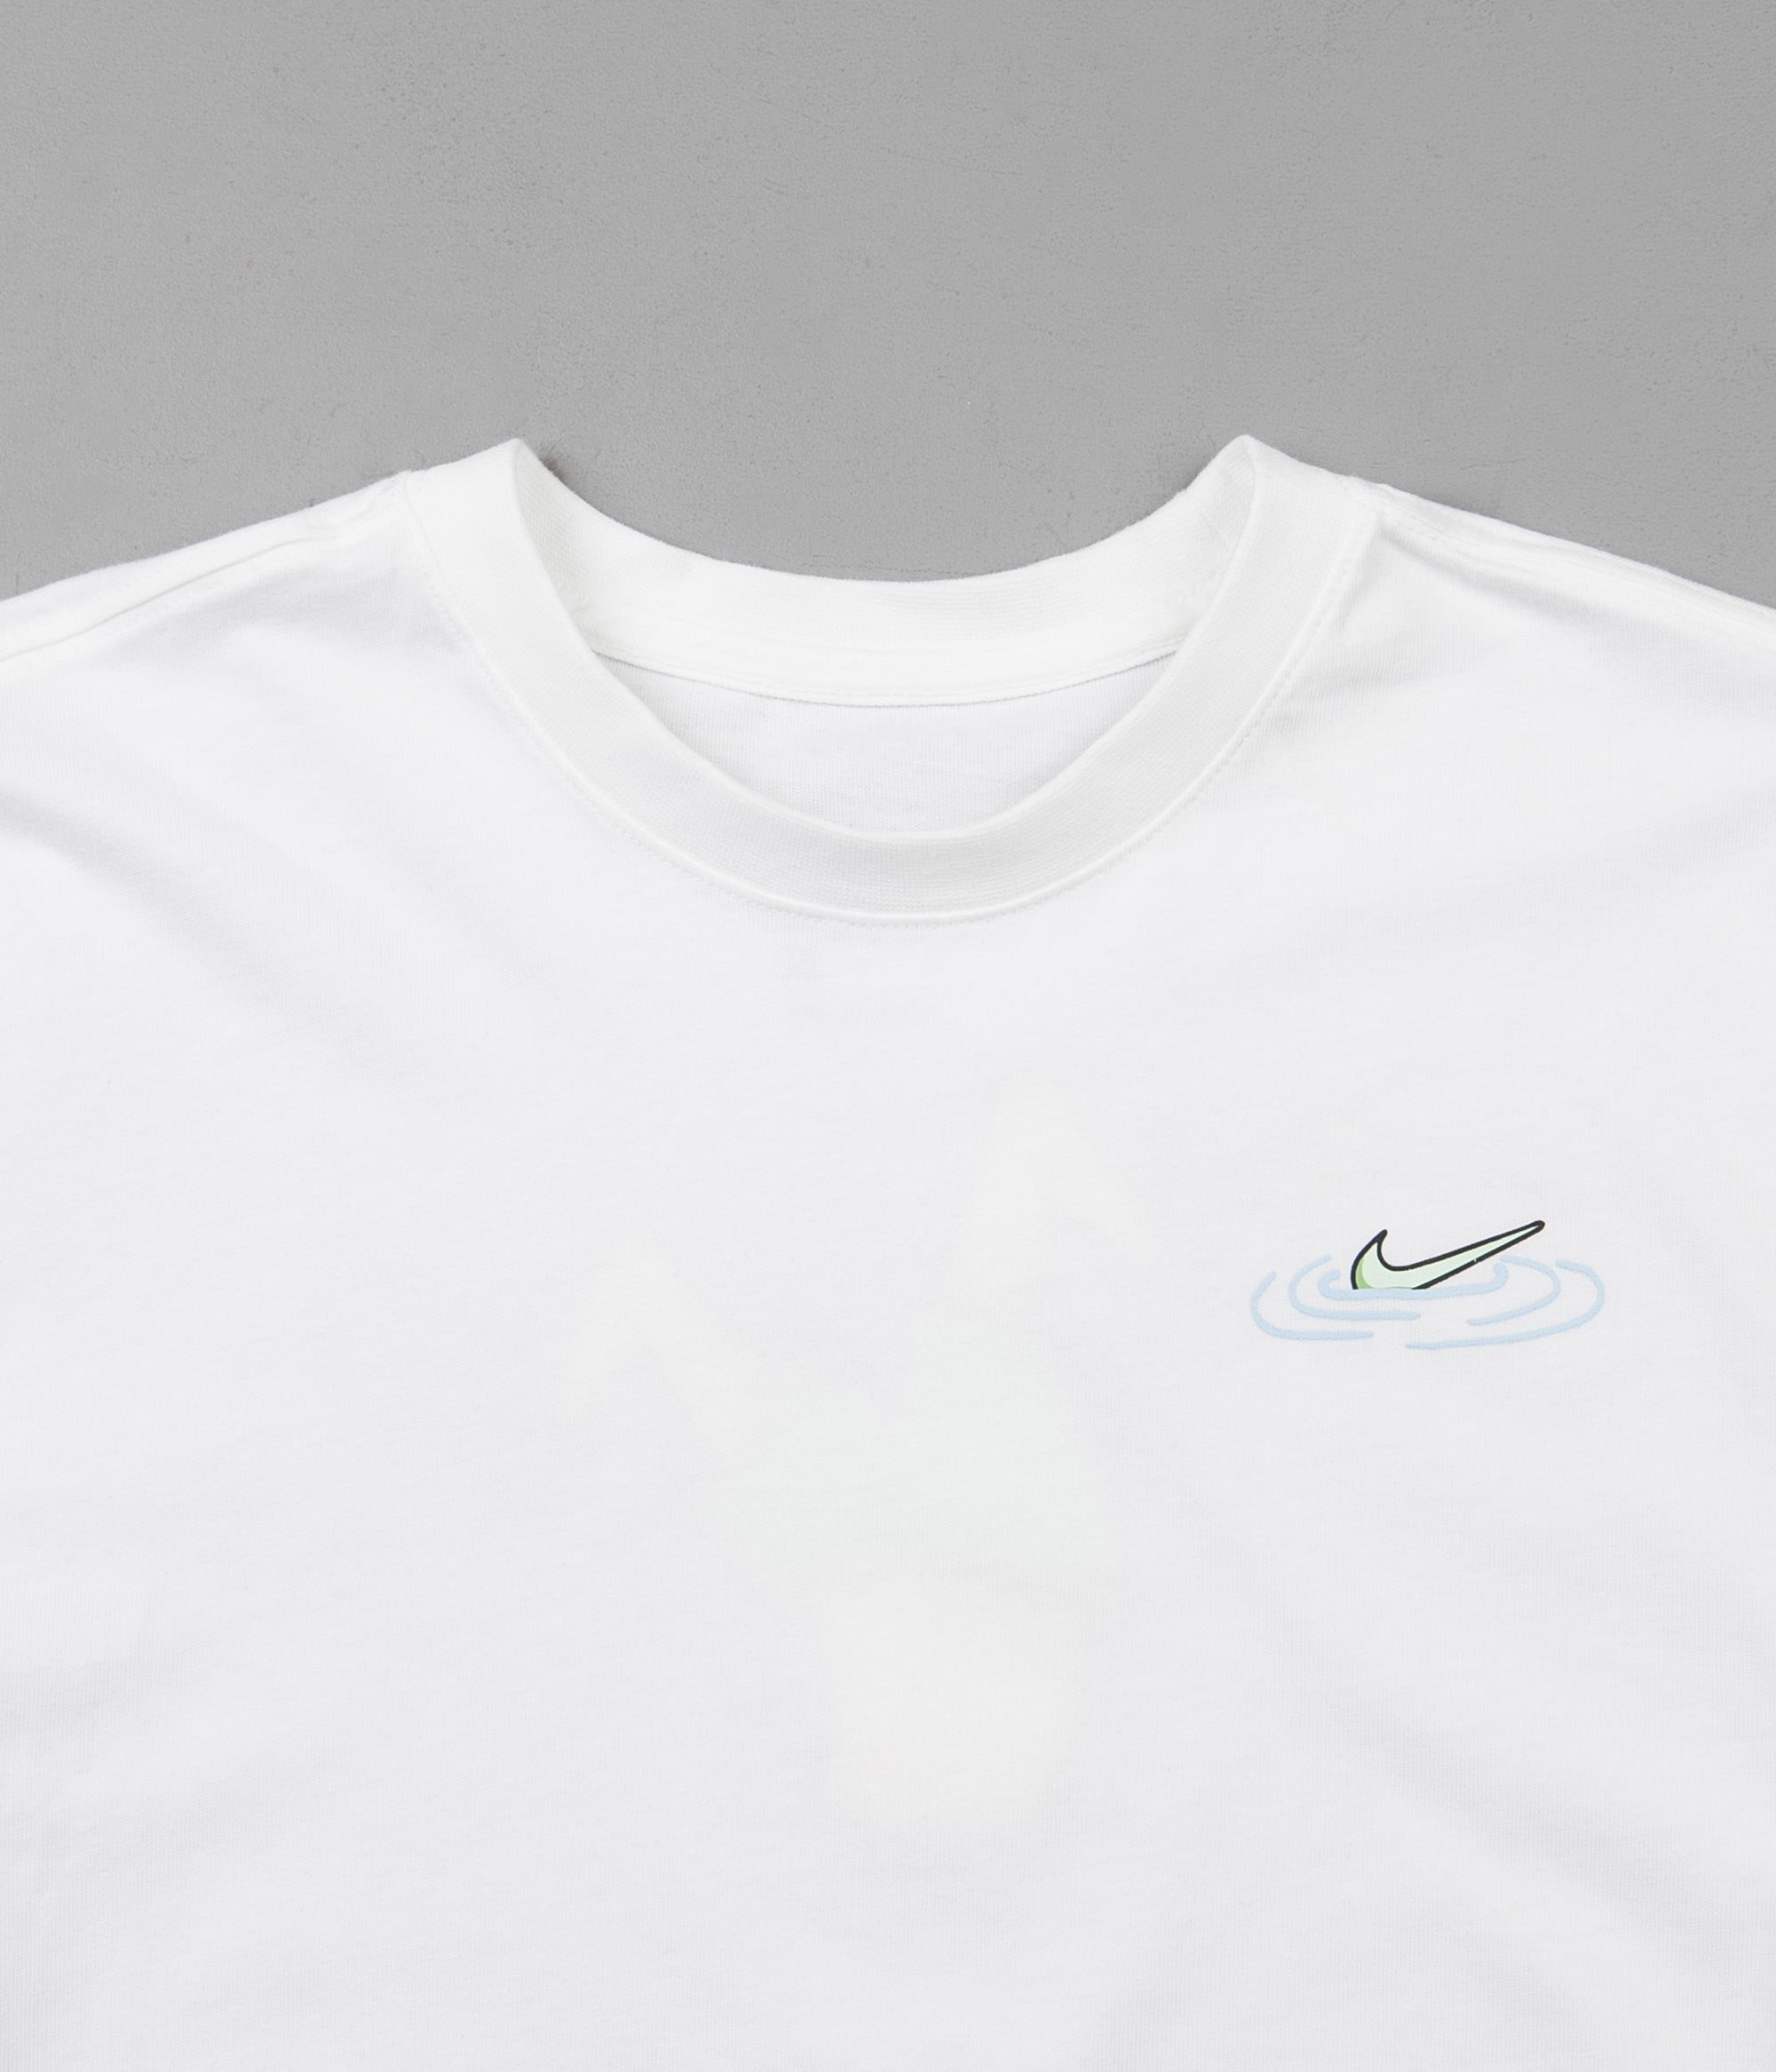 Nike SB Head First T-Shirt - White